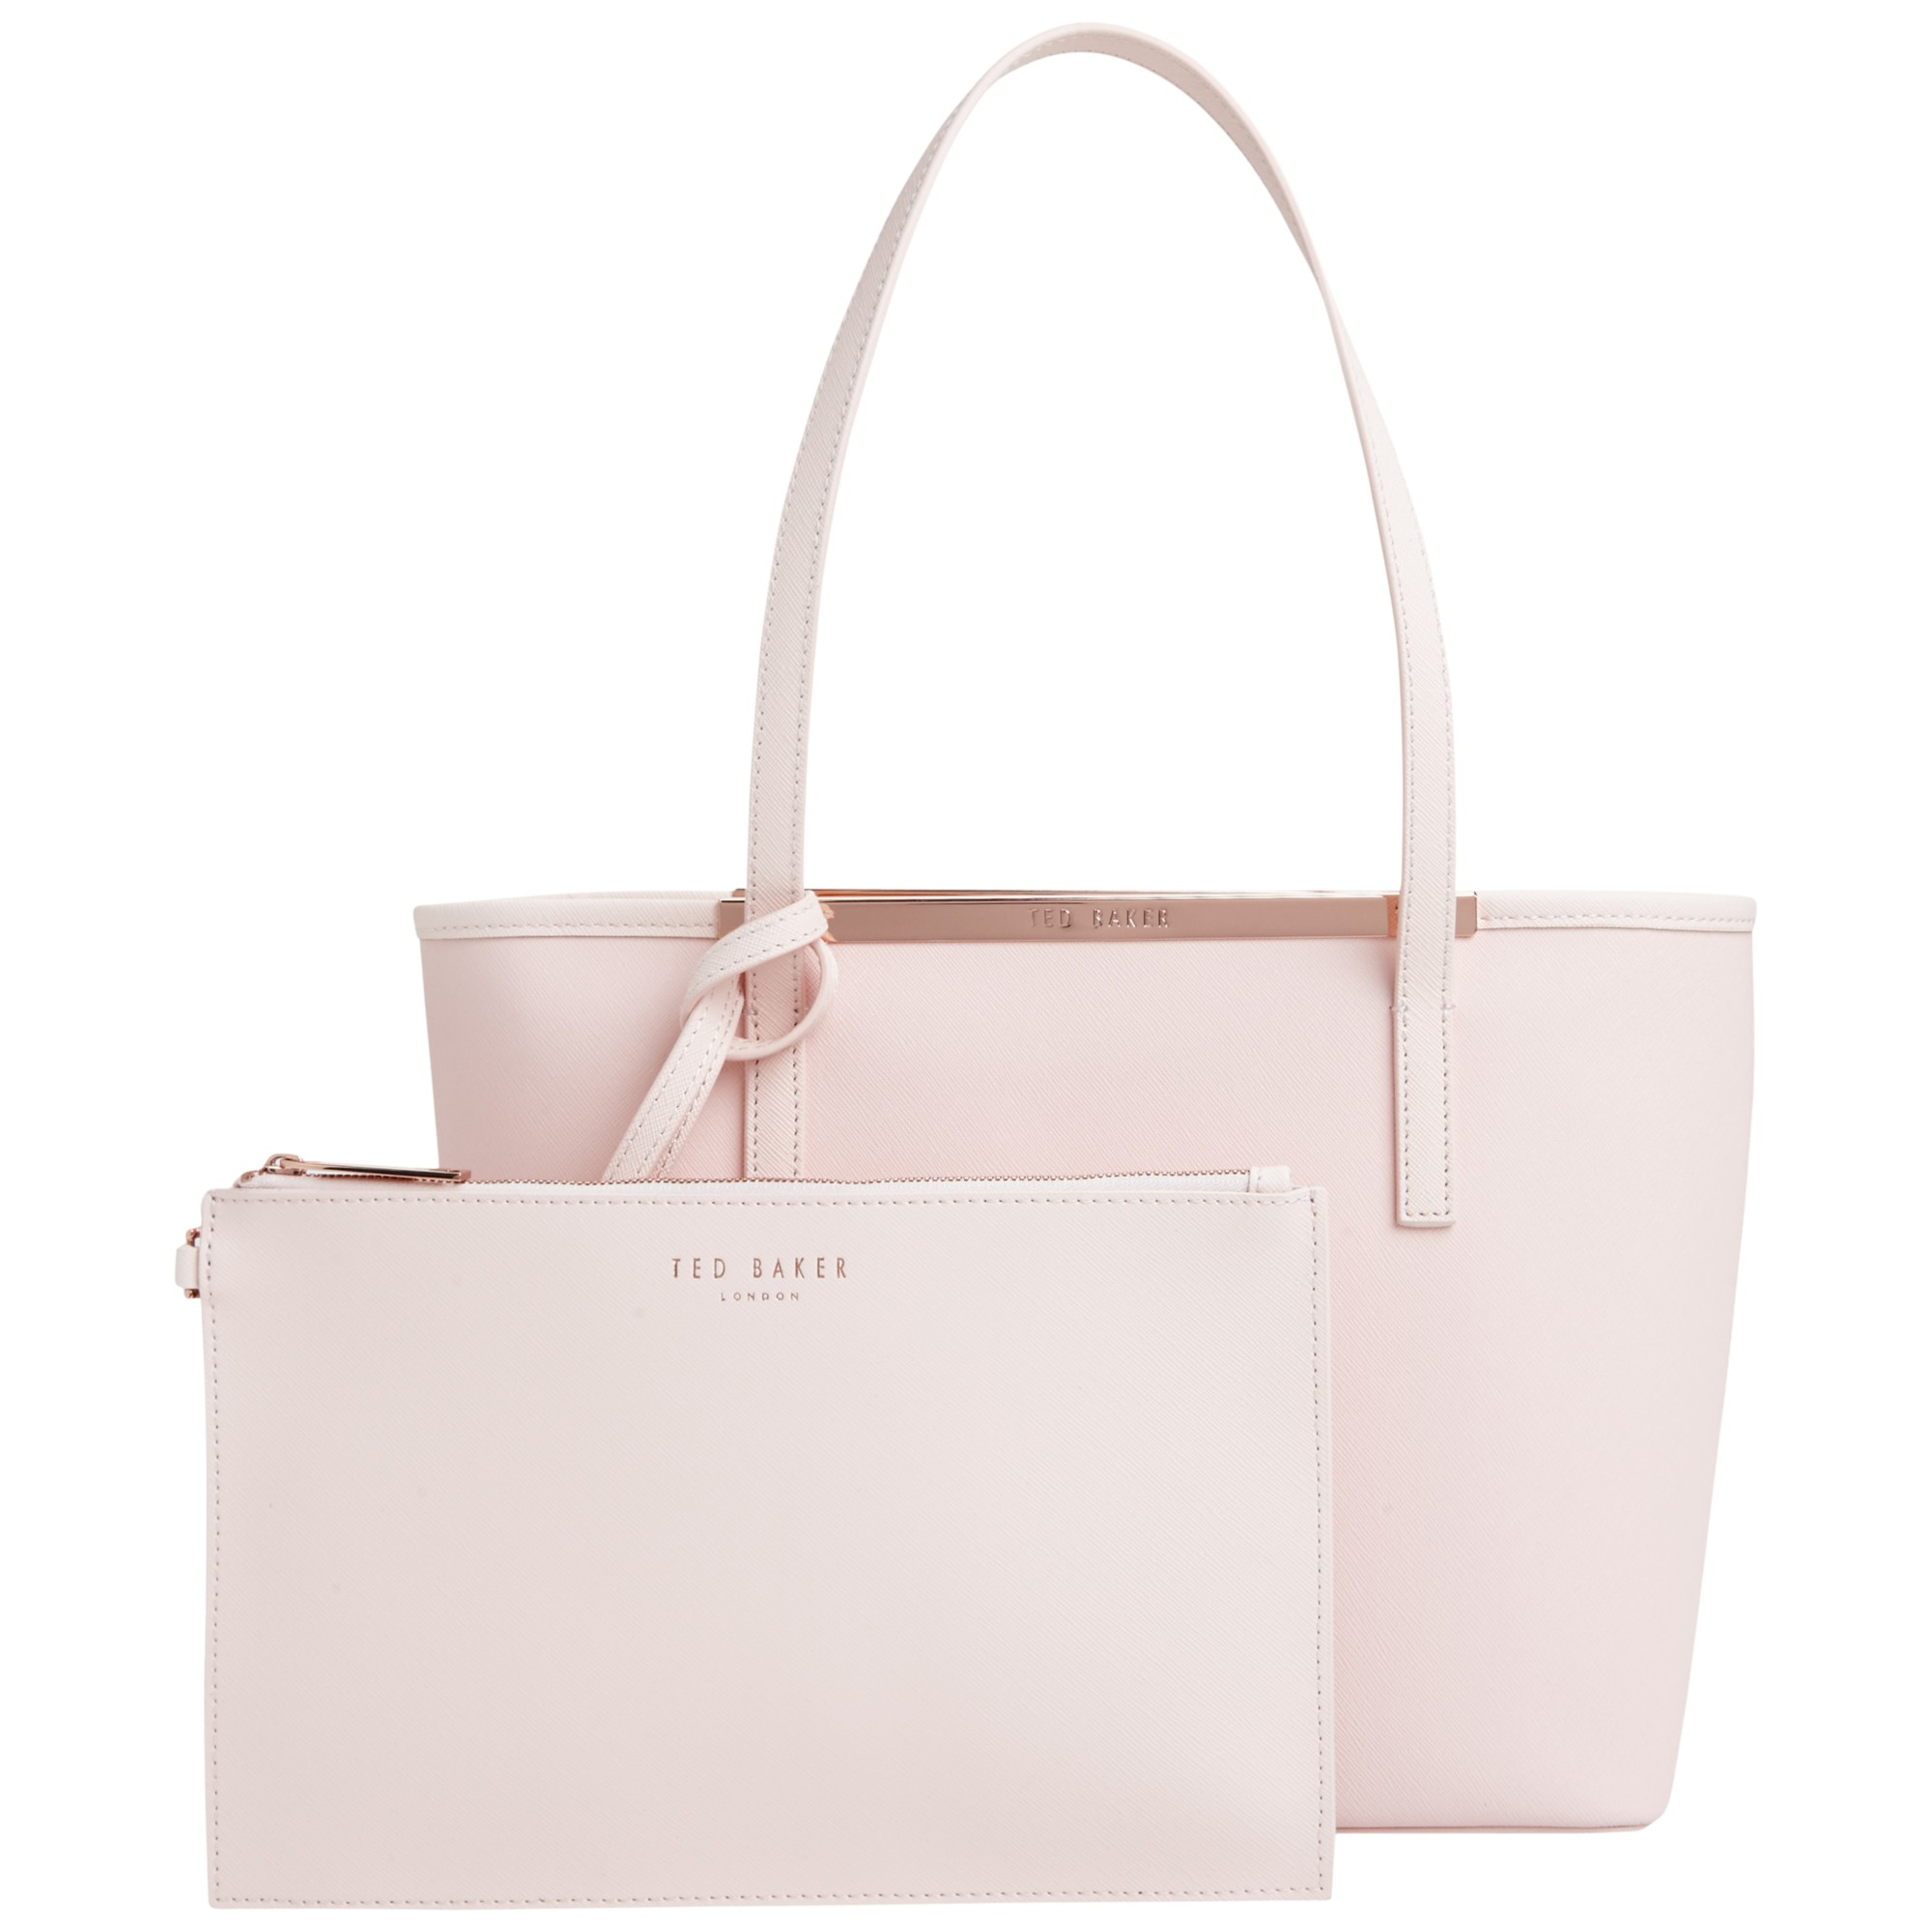 b1104ffd7bda44 Ted Baker Colour Block Metallic Small Shopper Bag in Natural - Lyst